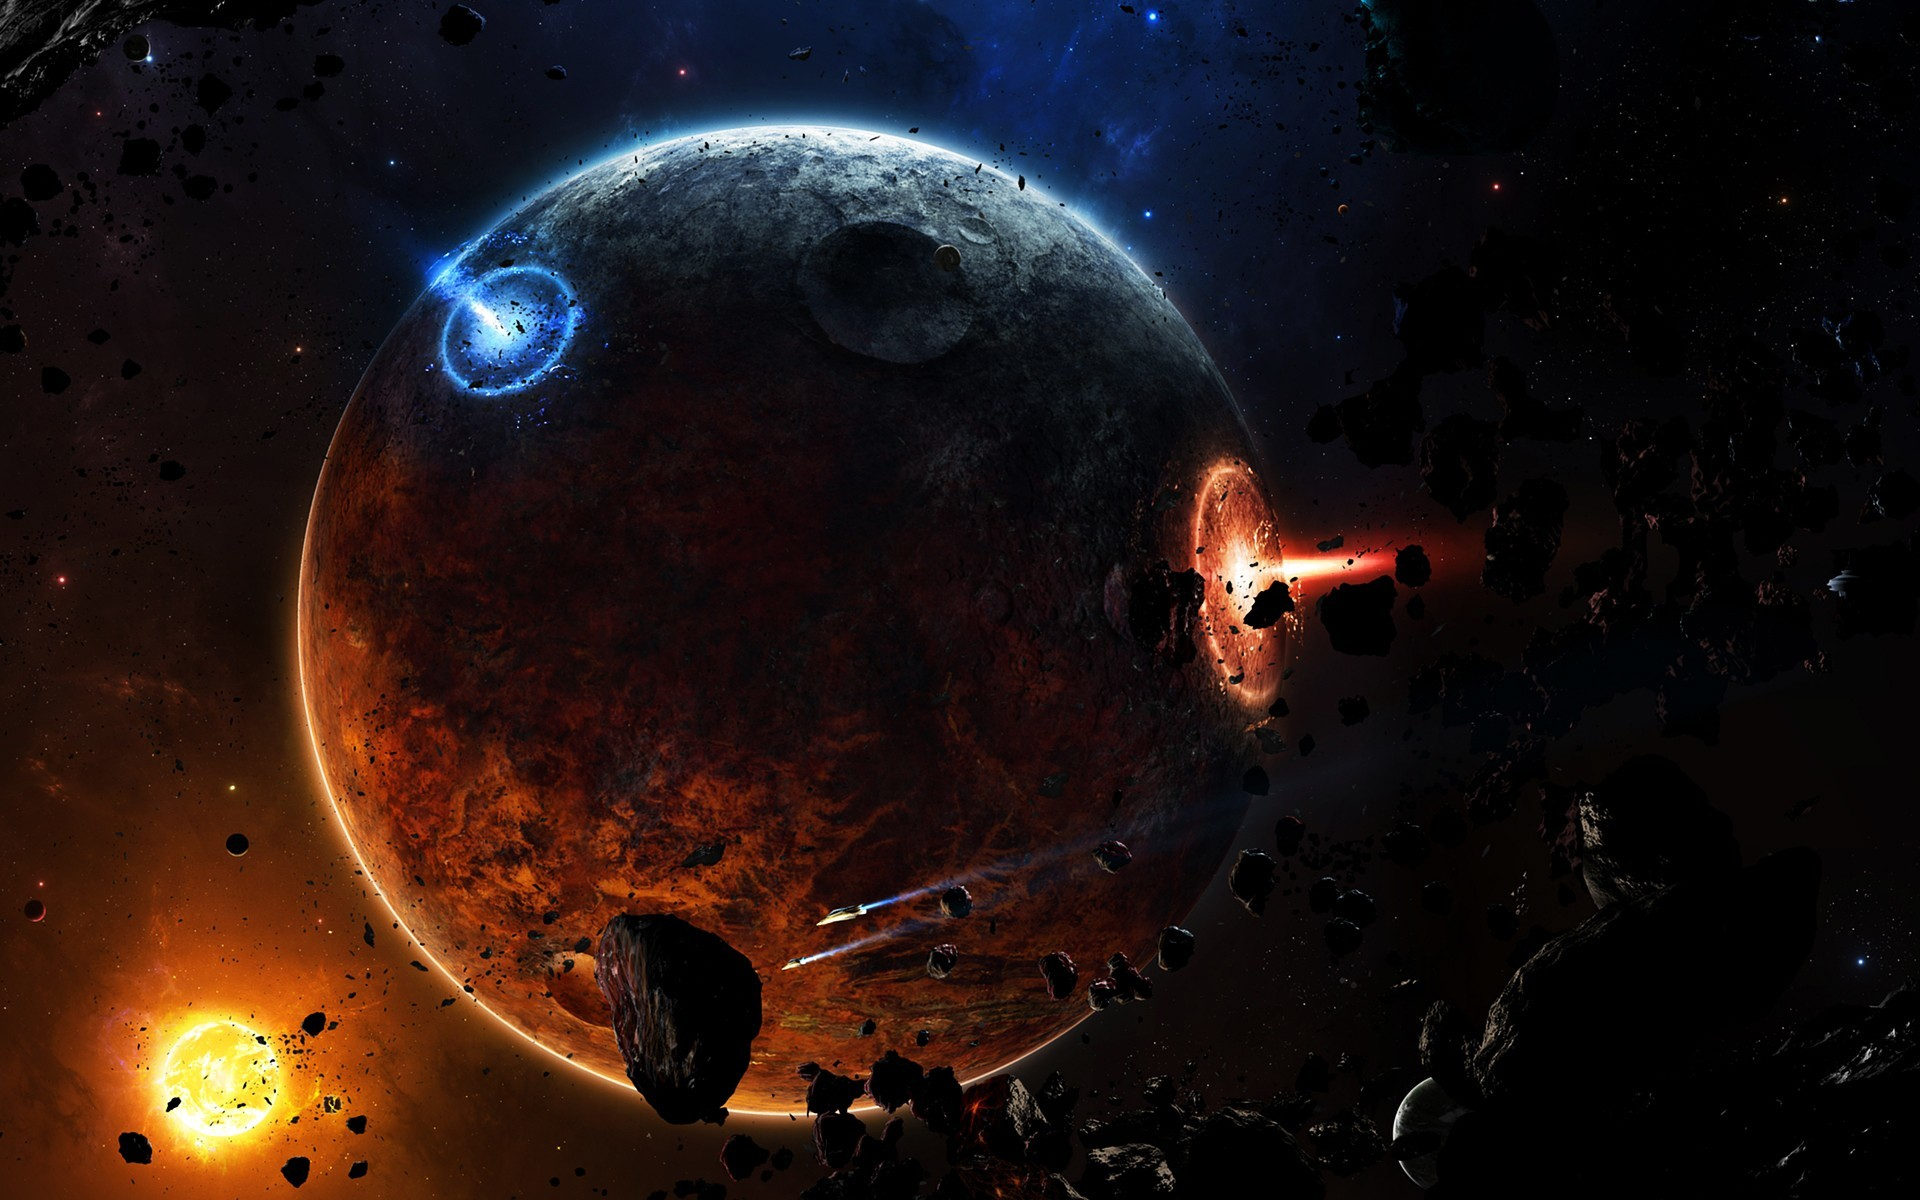 Image – Outer Space Planets Hd Background Wallpaper 29 HD Wallpapers.jpg    Dragon Ball Z Role Playing Wiki   FANDOM powered by Wikia